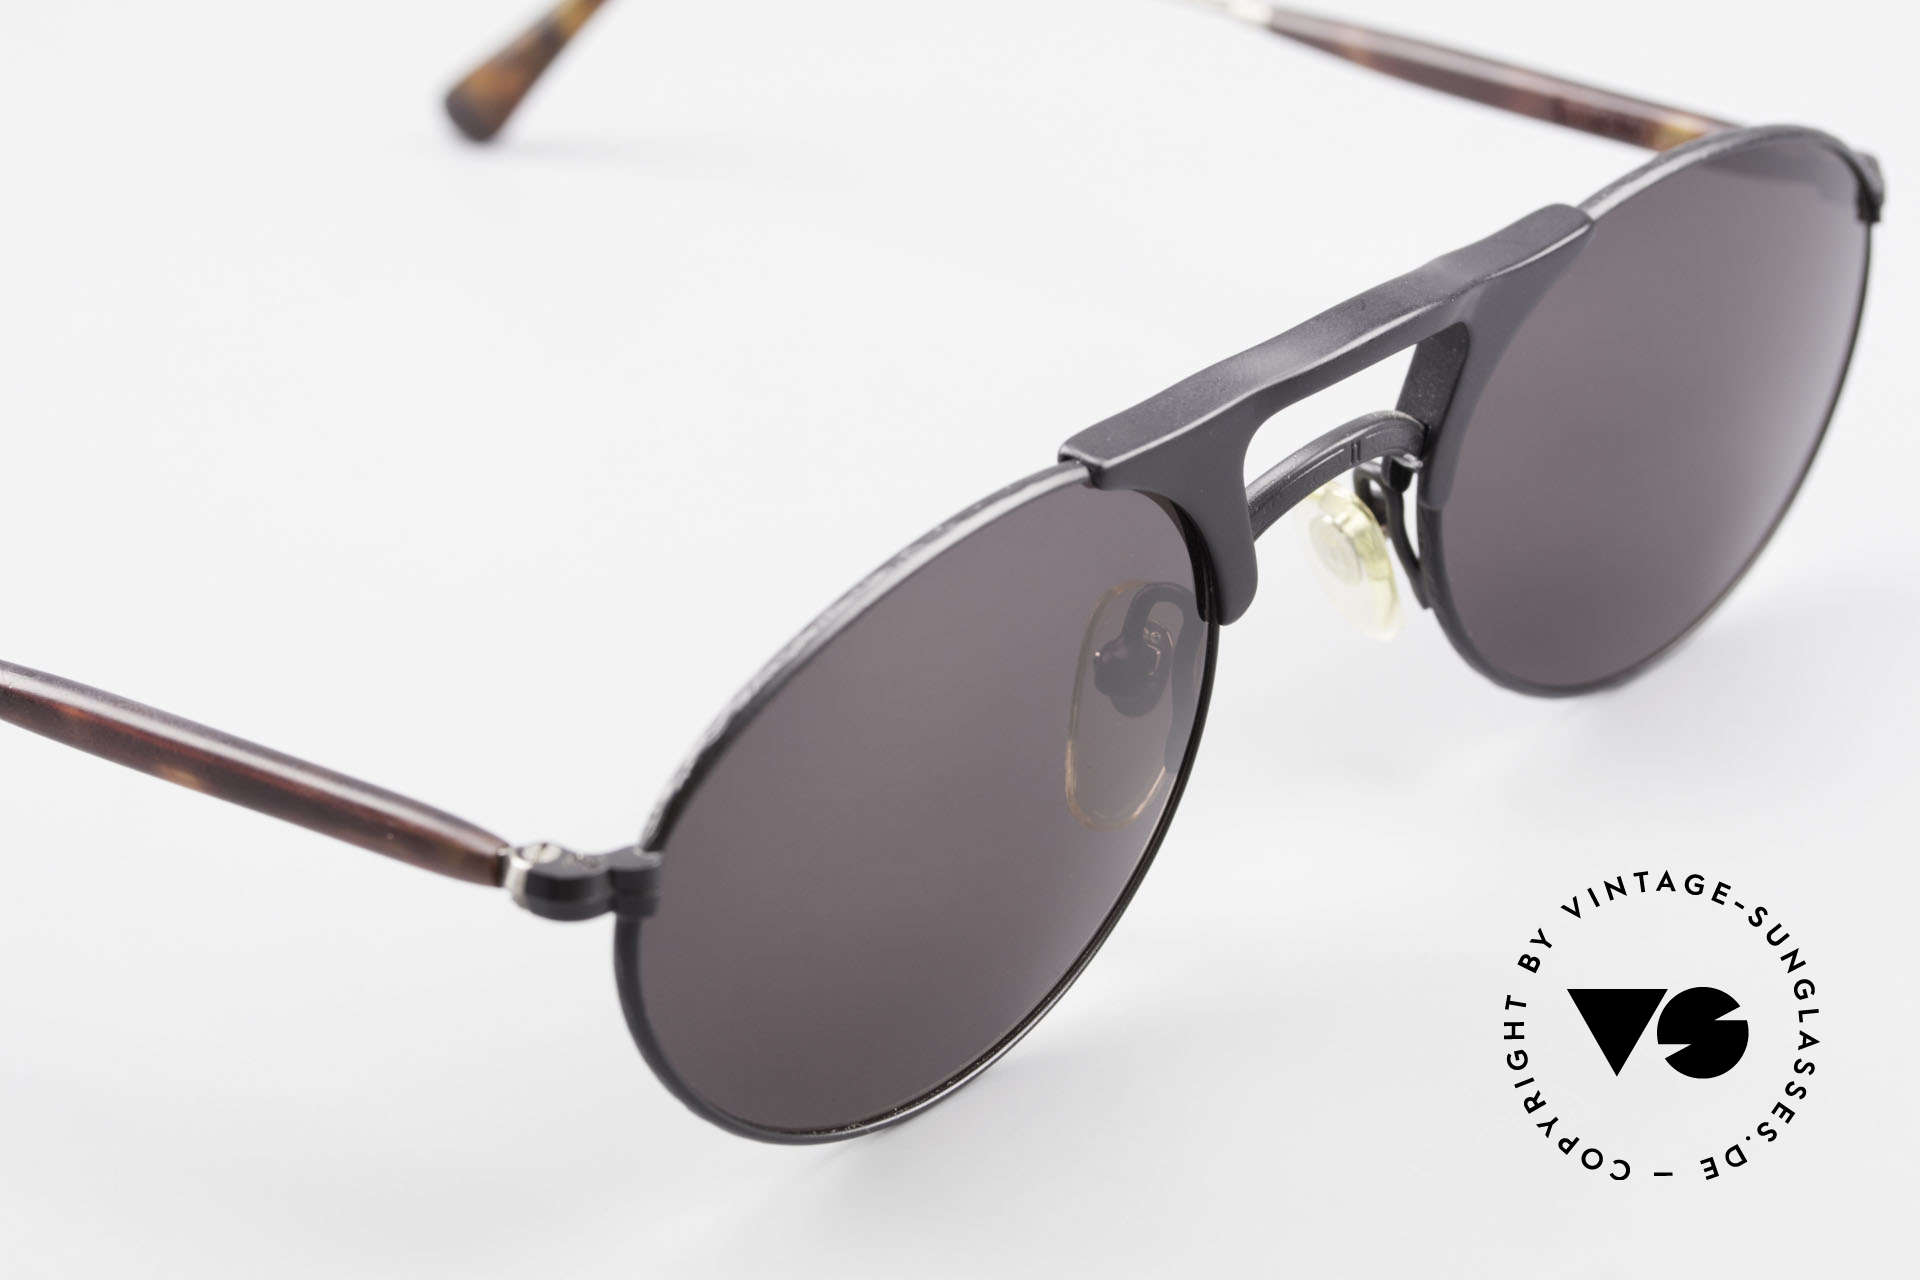 Matsuda 2820 Small Aviator Style Sunglasses, NO retro sunglasses, but a 25 years old ORIGINAL, vertu, Made for Men and Women